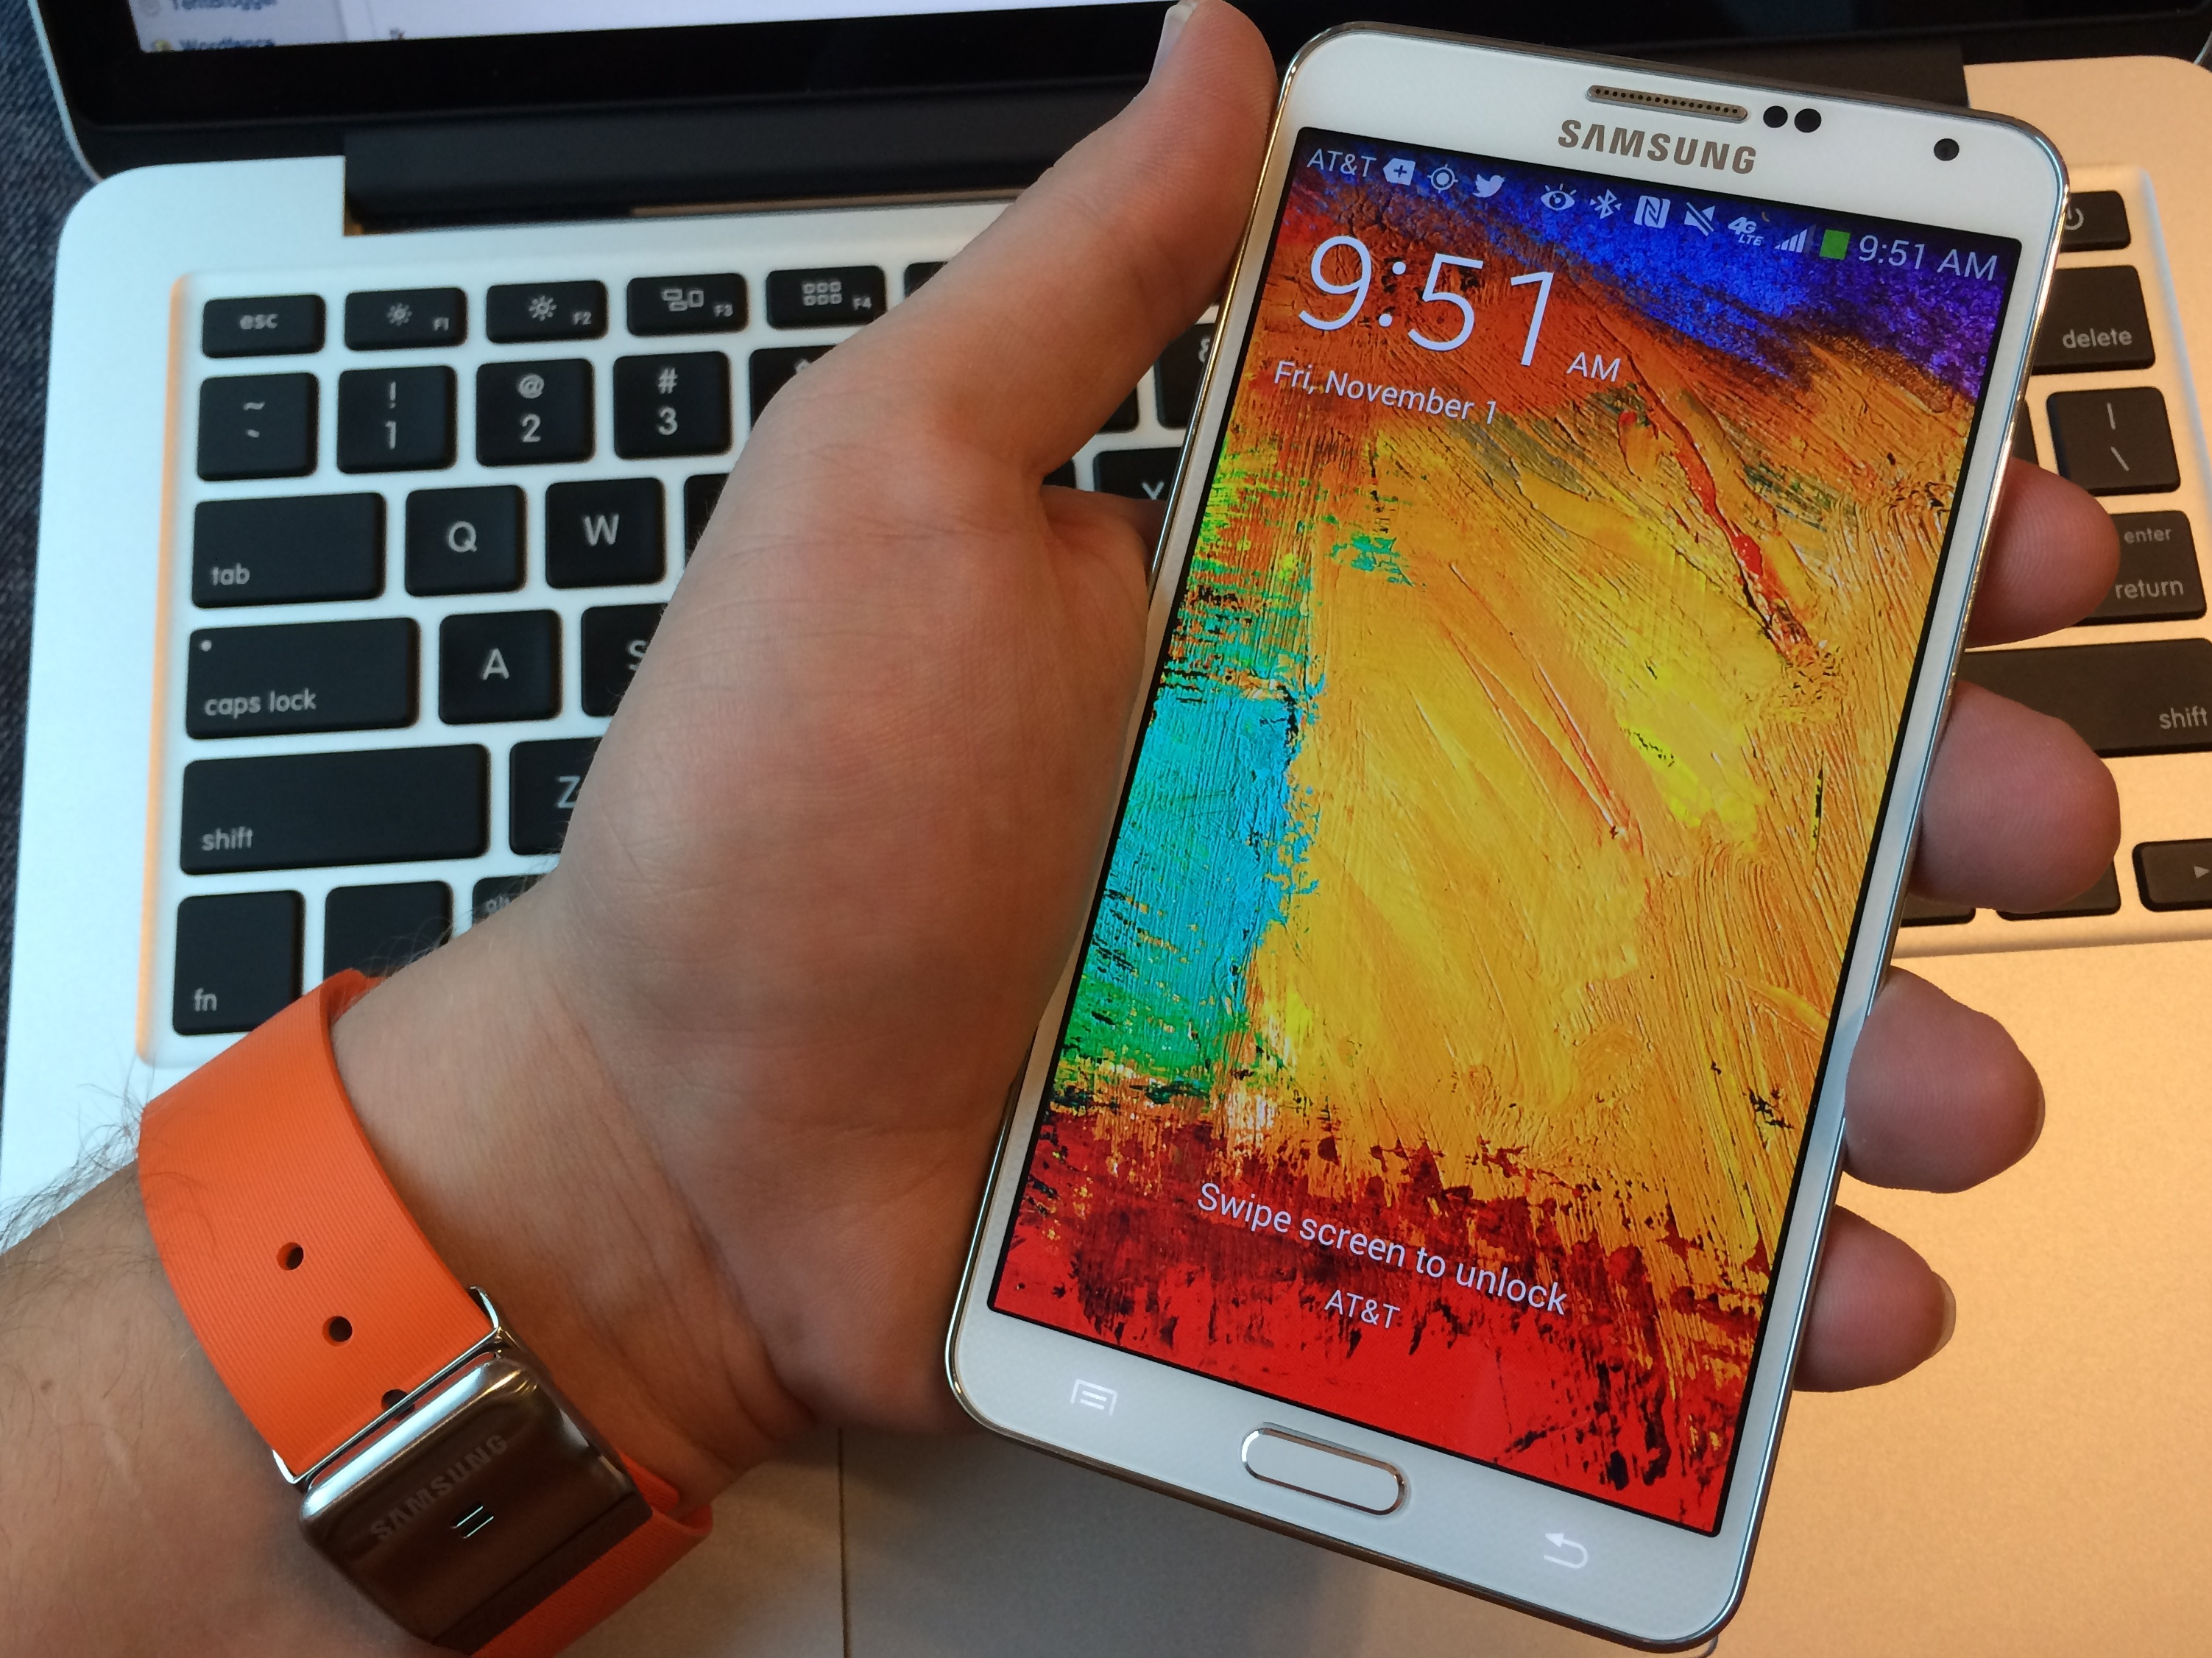 7 Hidden Galaxy Gear Features and Uses